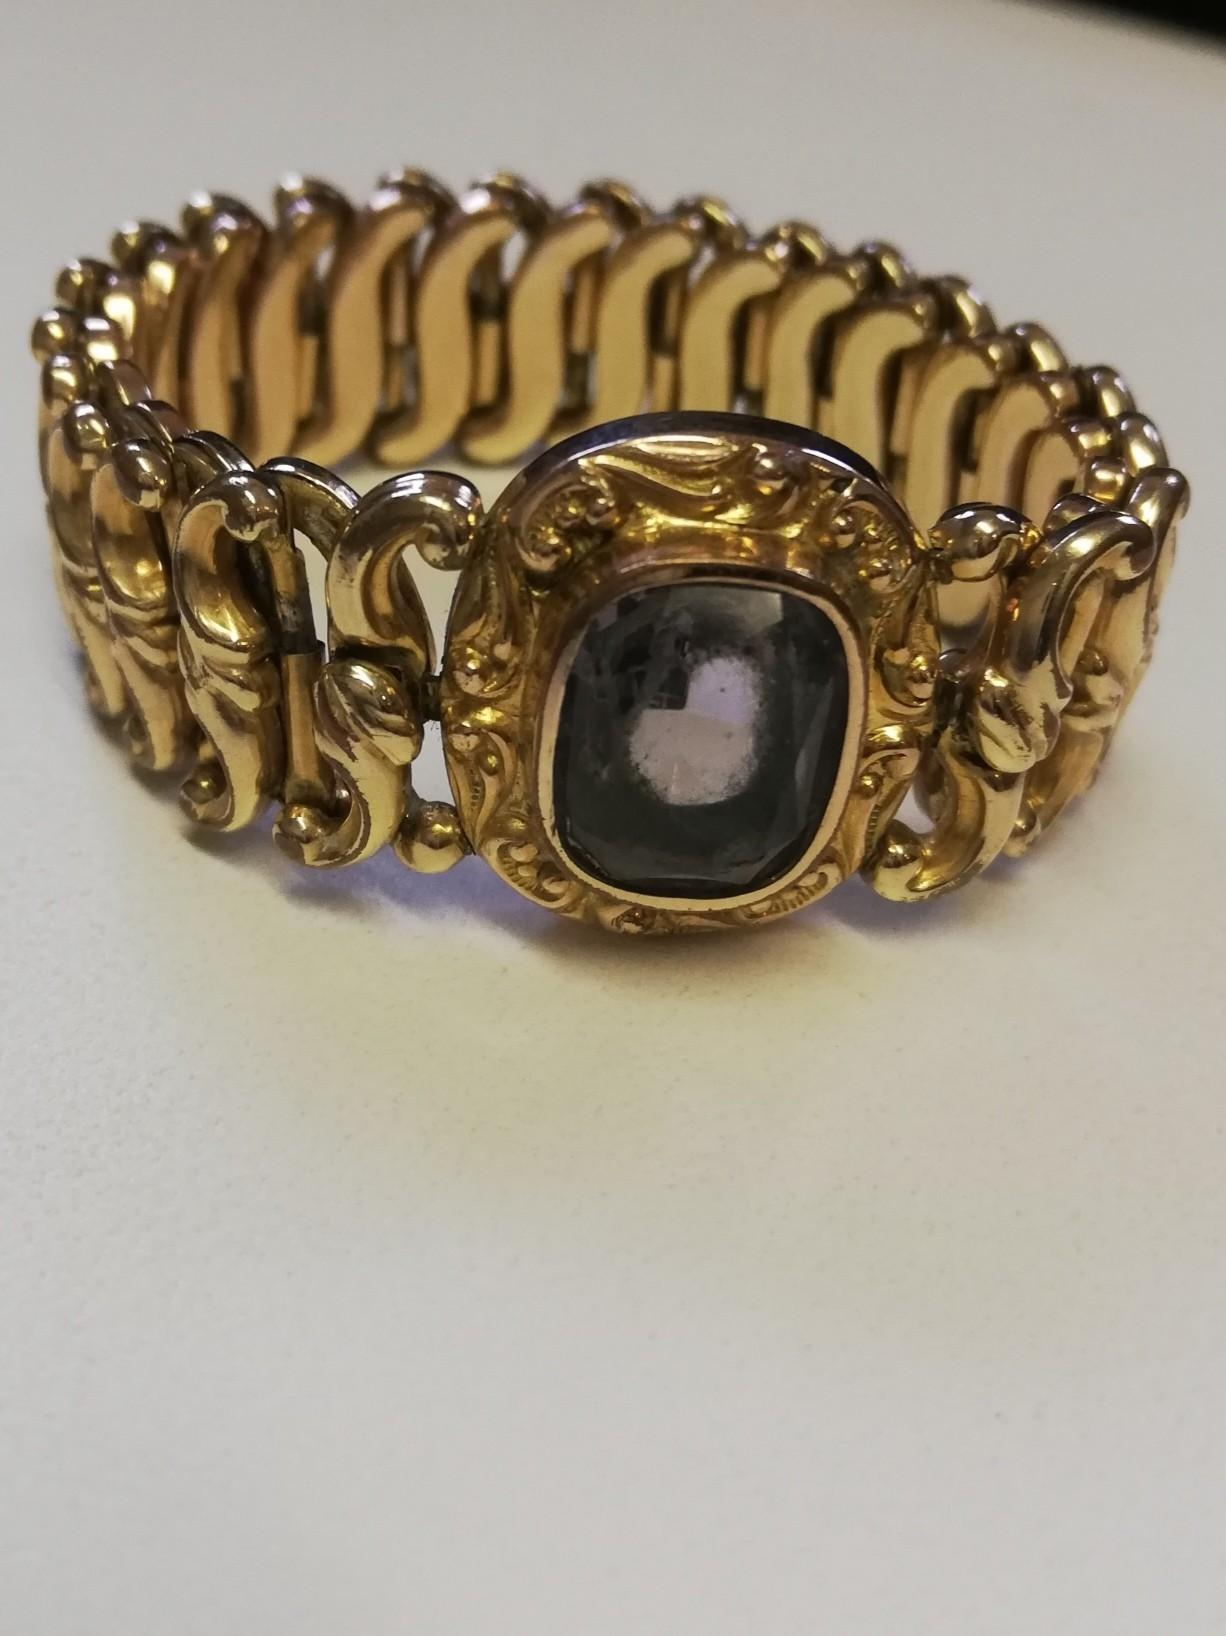 Minerva rolled gold expanding bracelet with amethyst central stone